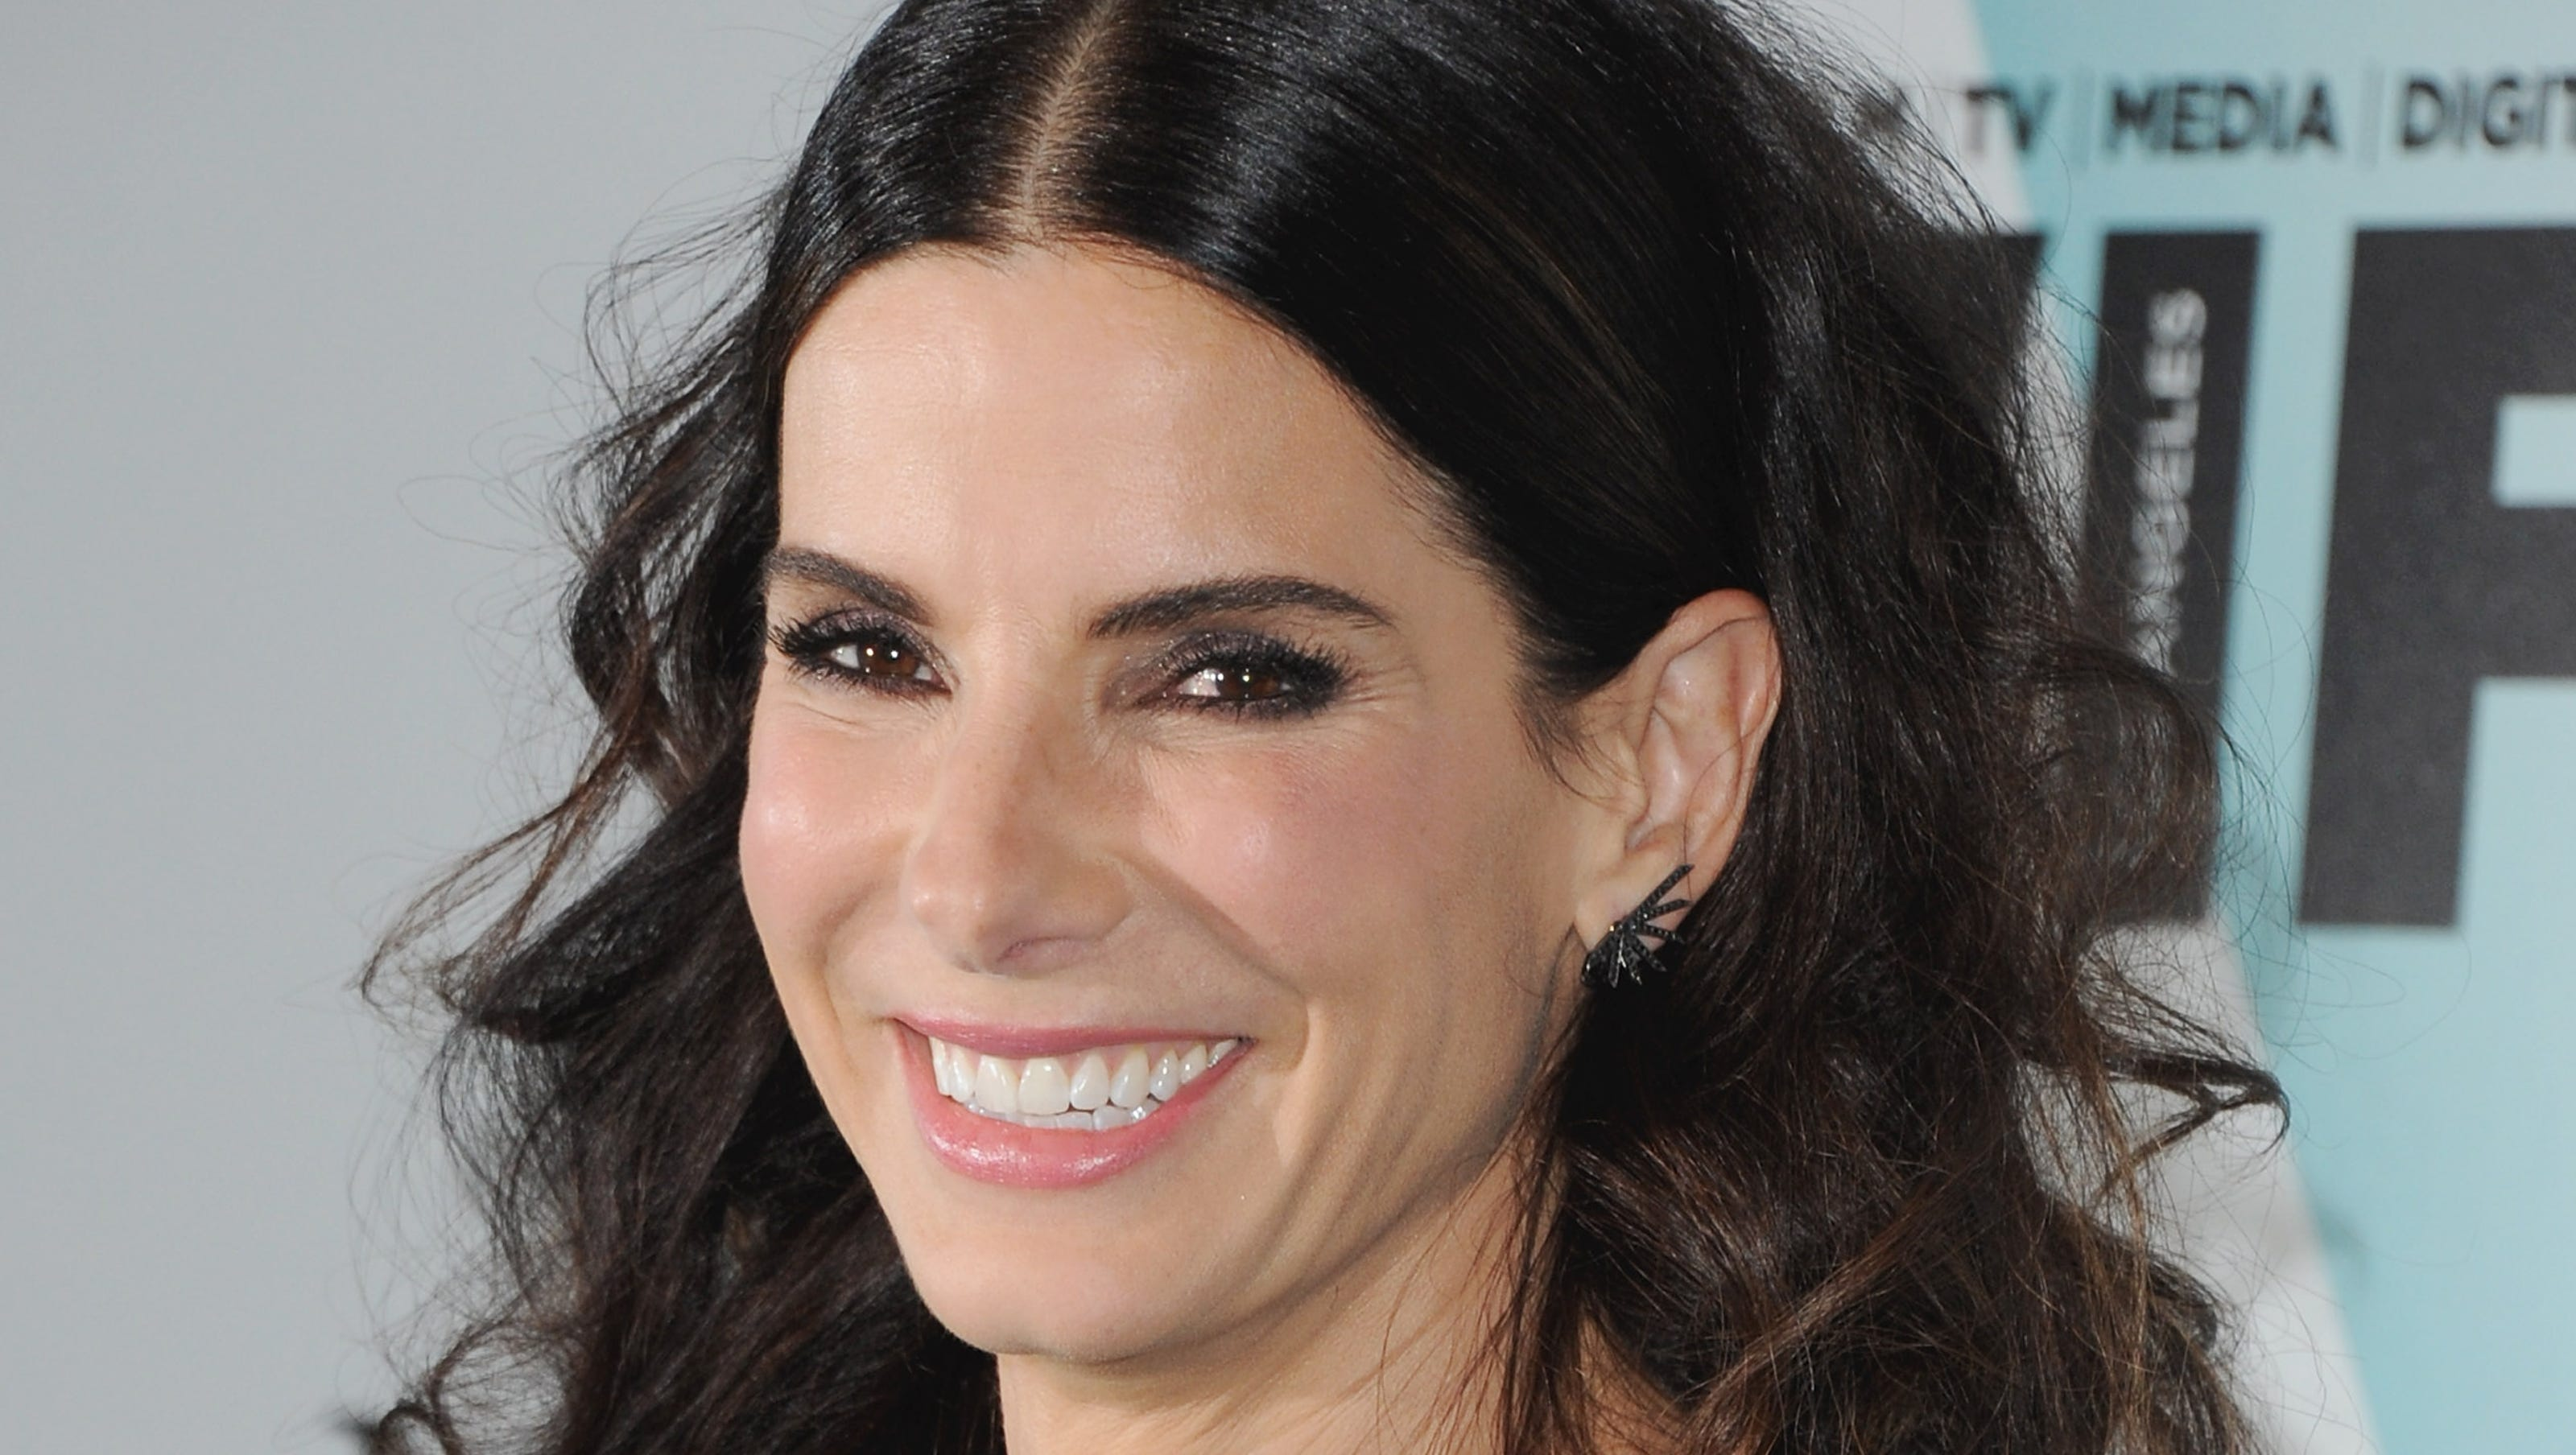 Who is sandra bullock dating now